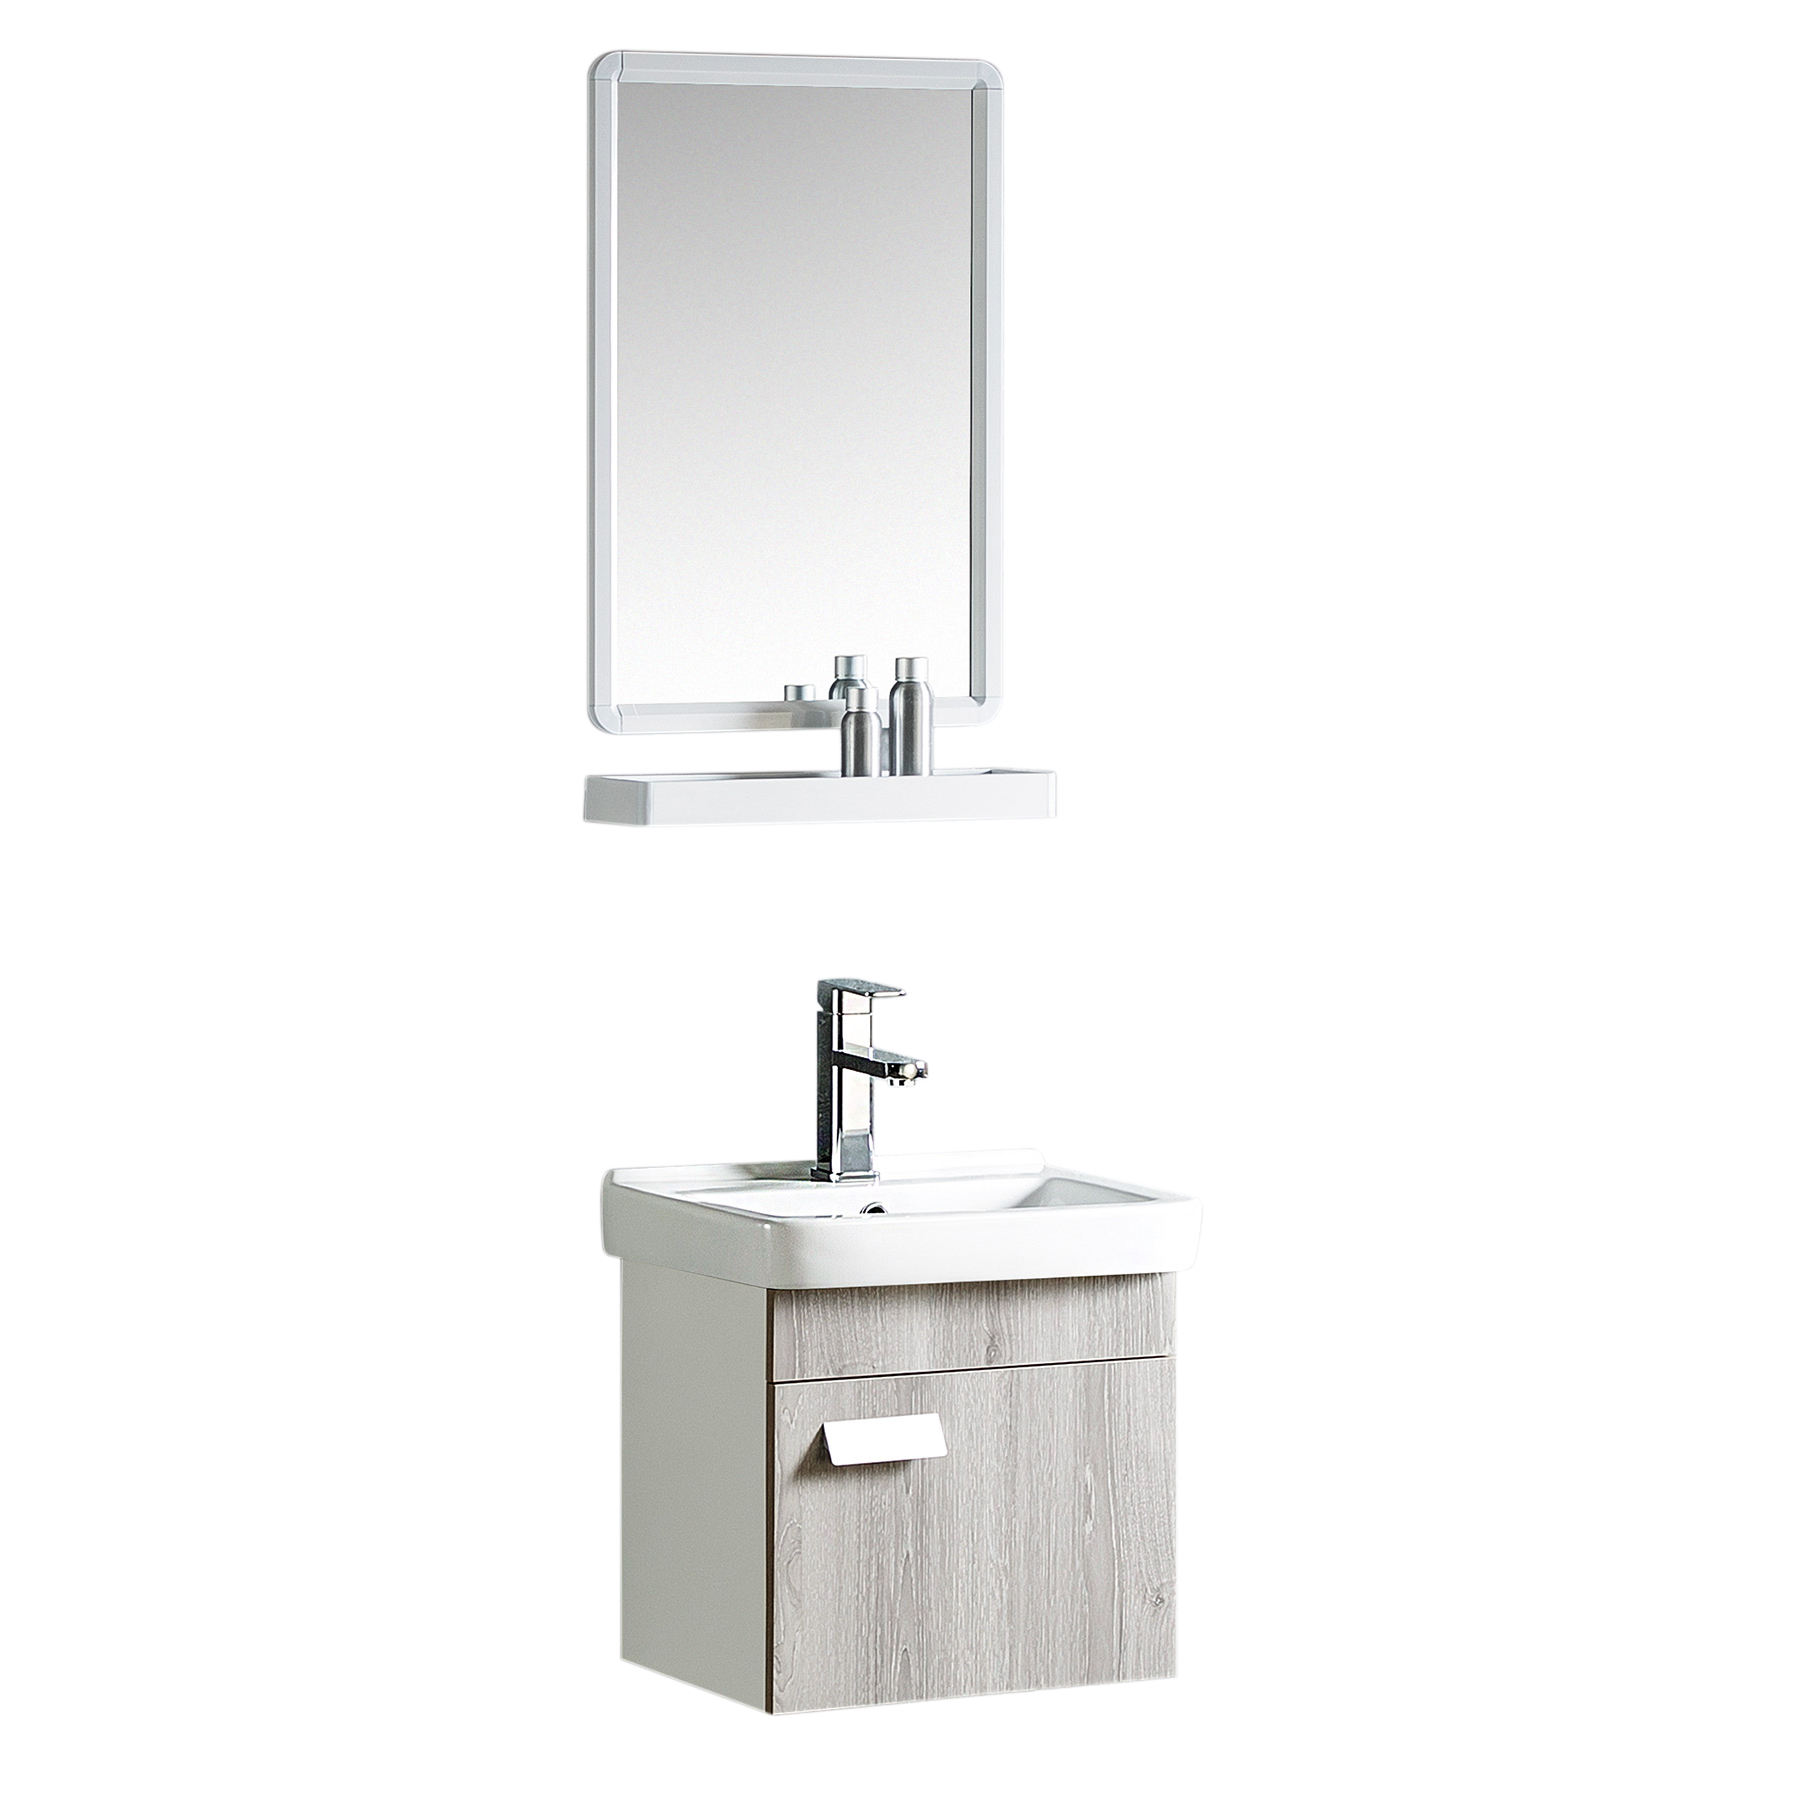 Cheap Price Waterproof Small Size PVC Bathroom Cabinet PVC Bathroom Vanity 6518-18''